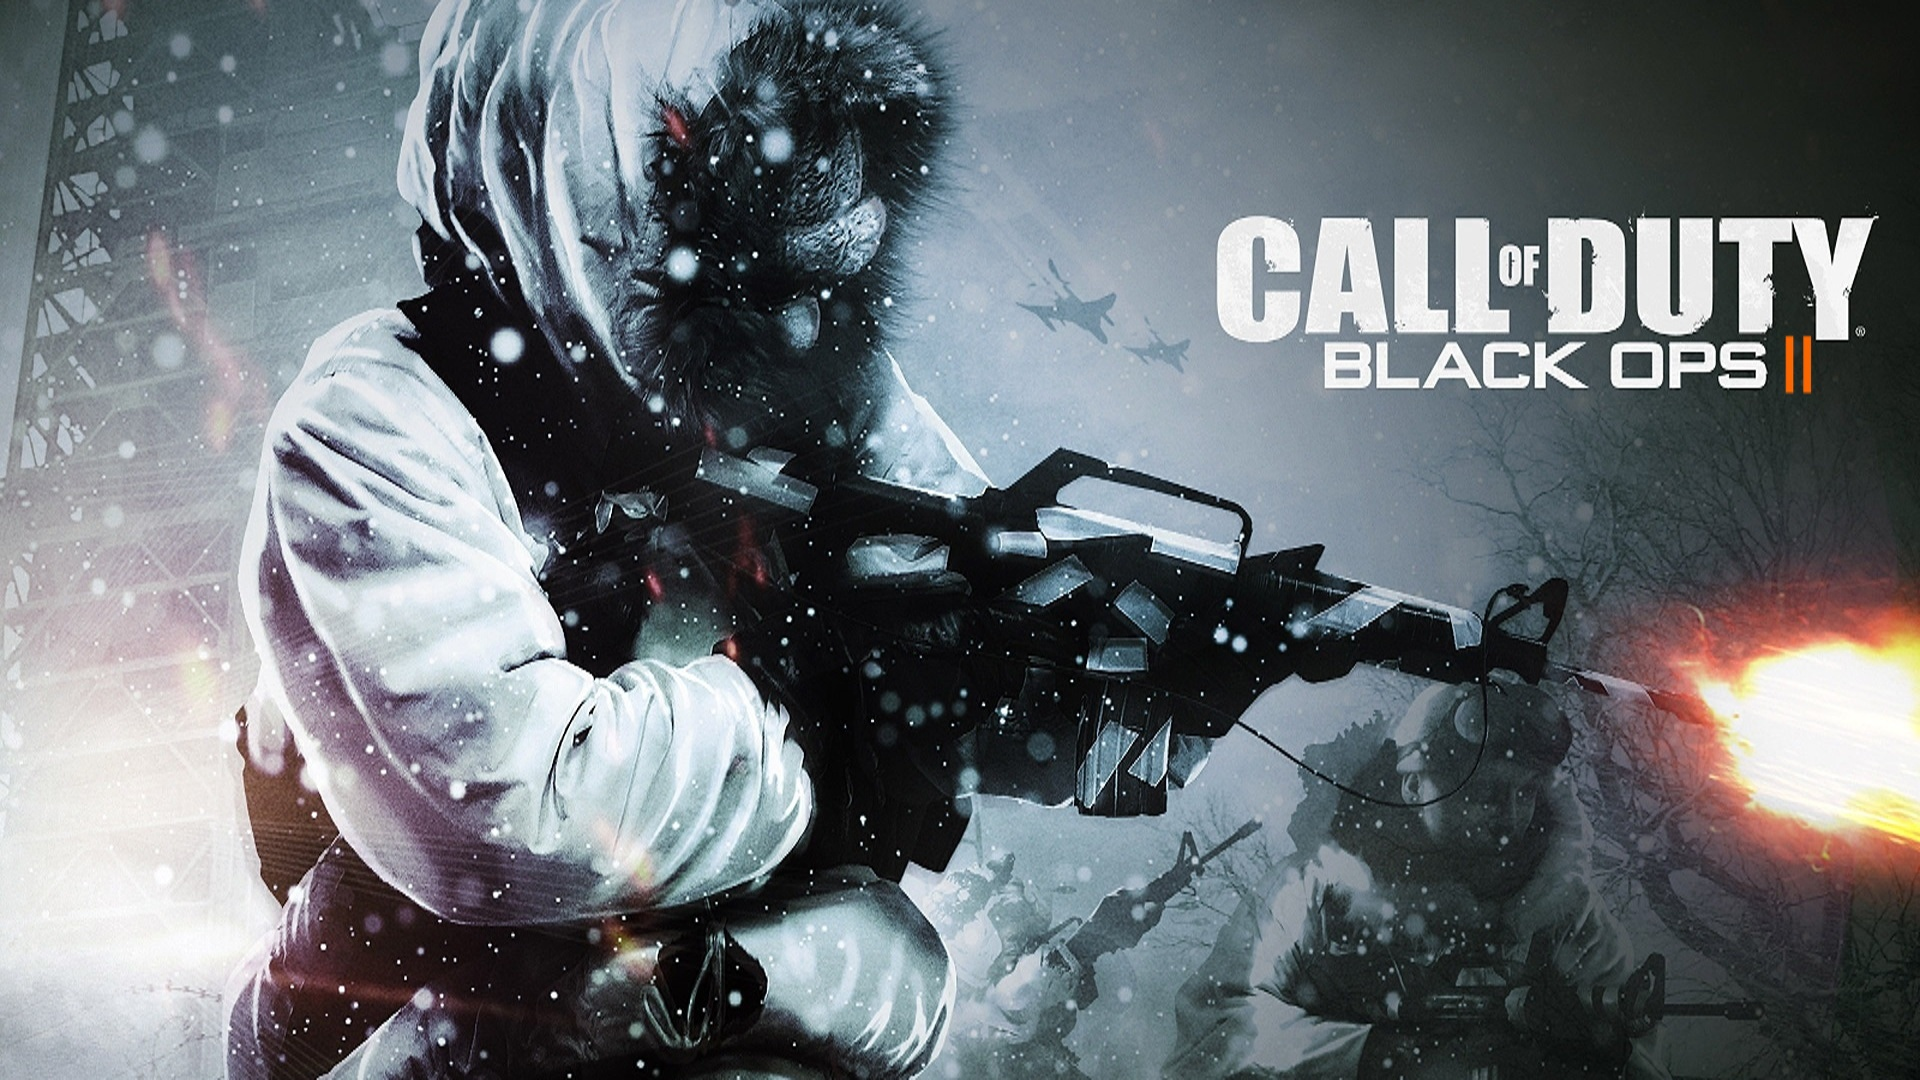 Call of Duty Black Ops 2 wallpaper 9